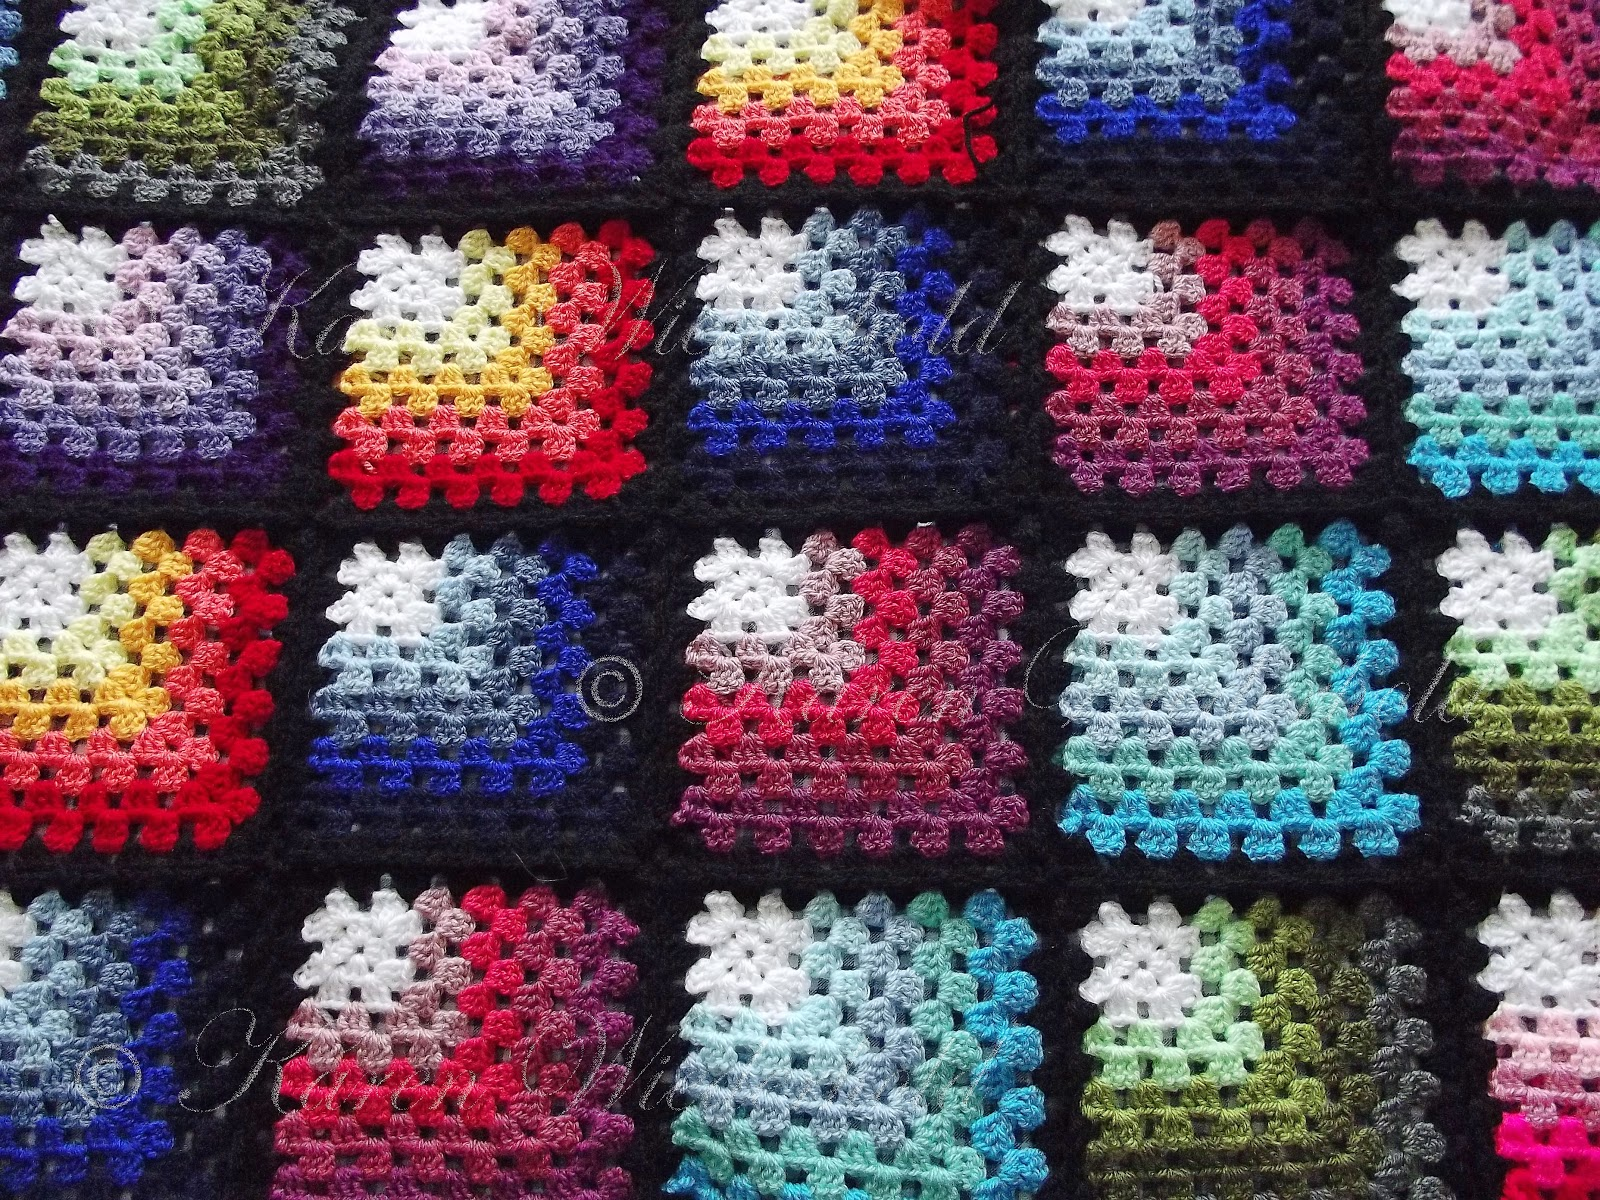 Crochet Patterns Squares : ... Granny Square Blanket - Free Crochet Pattern - Copyright 2013-2015